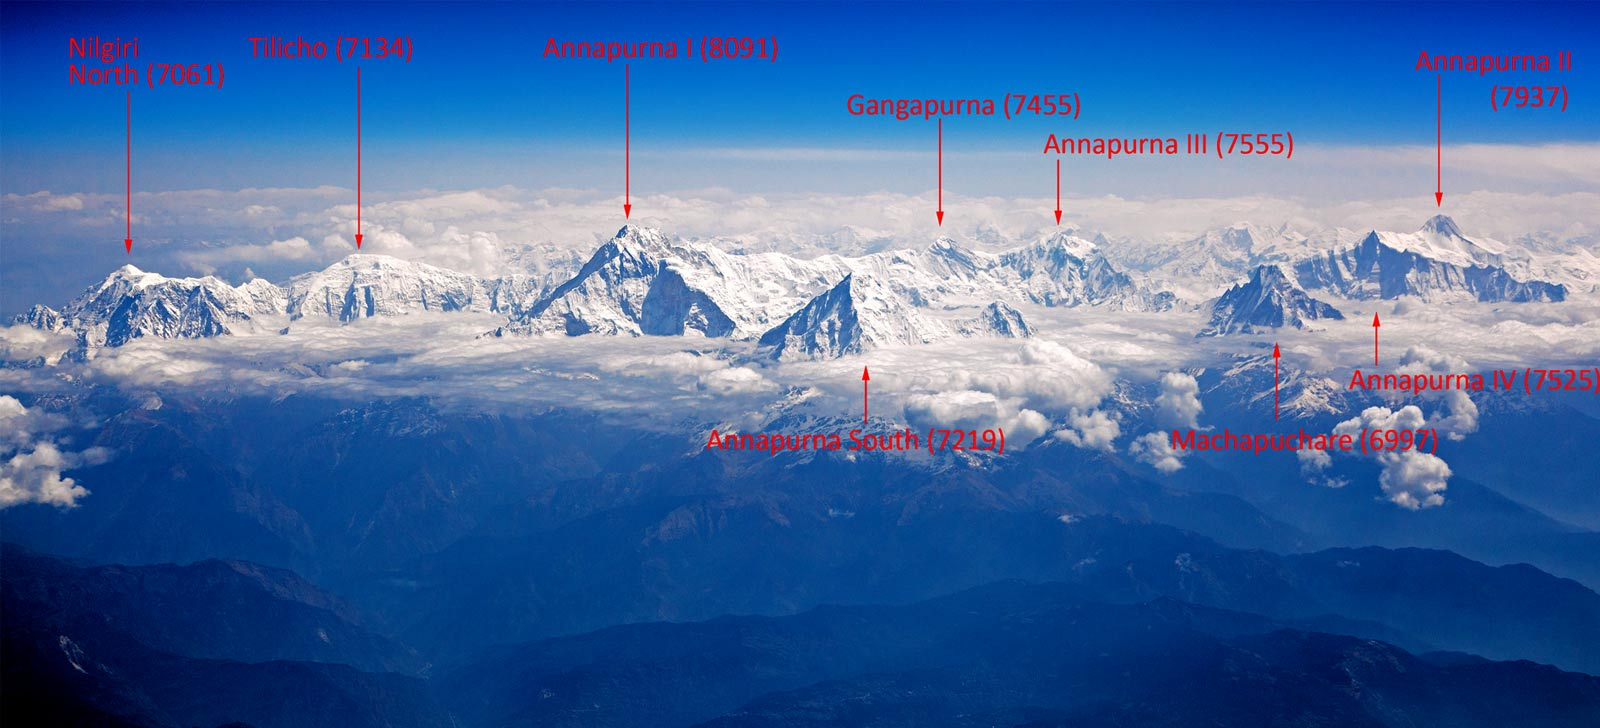 Helicopter Tour to Annapurna